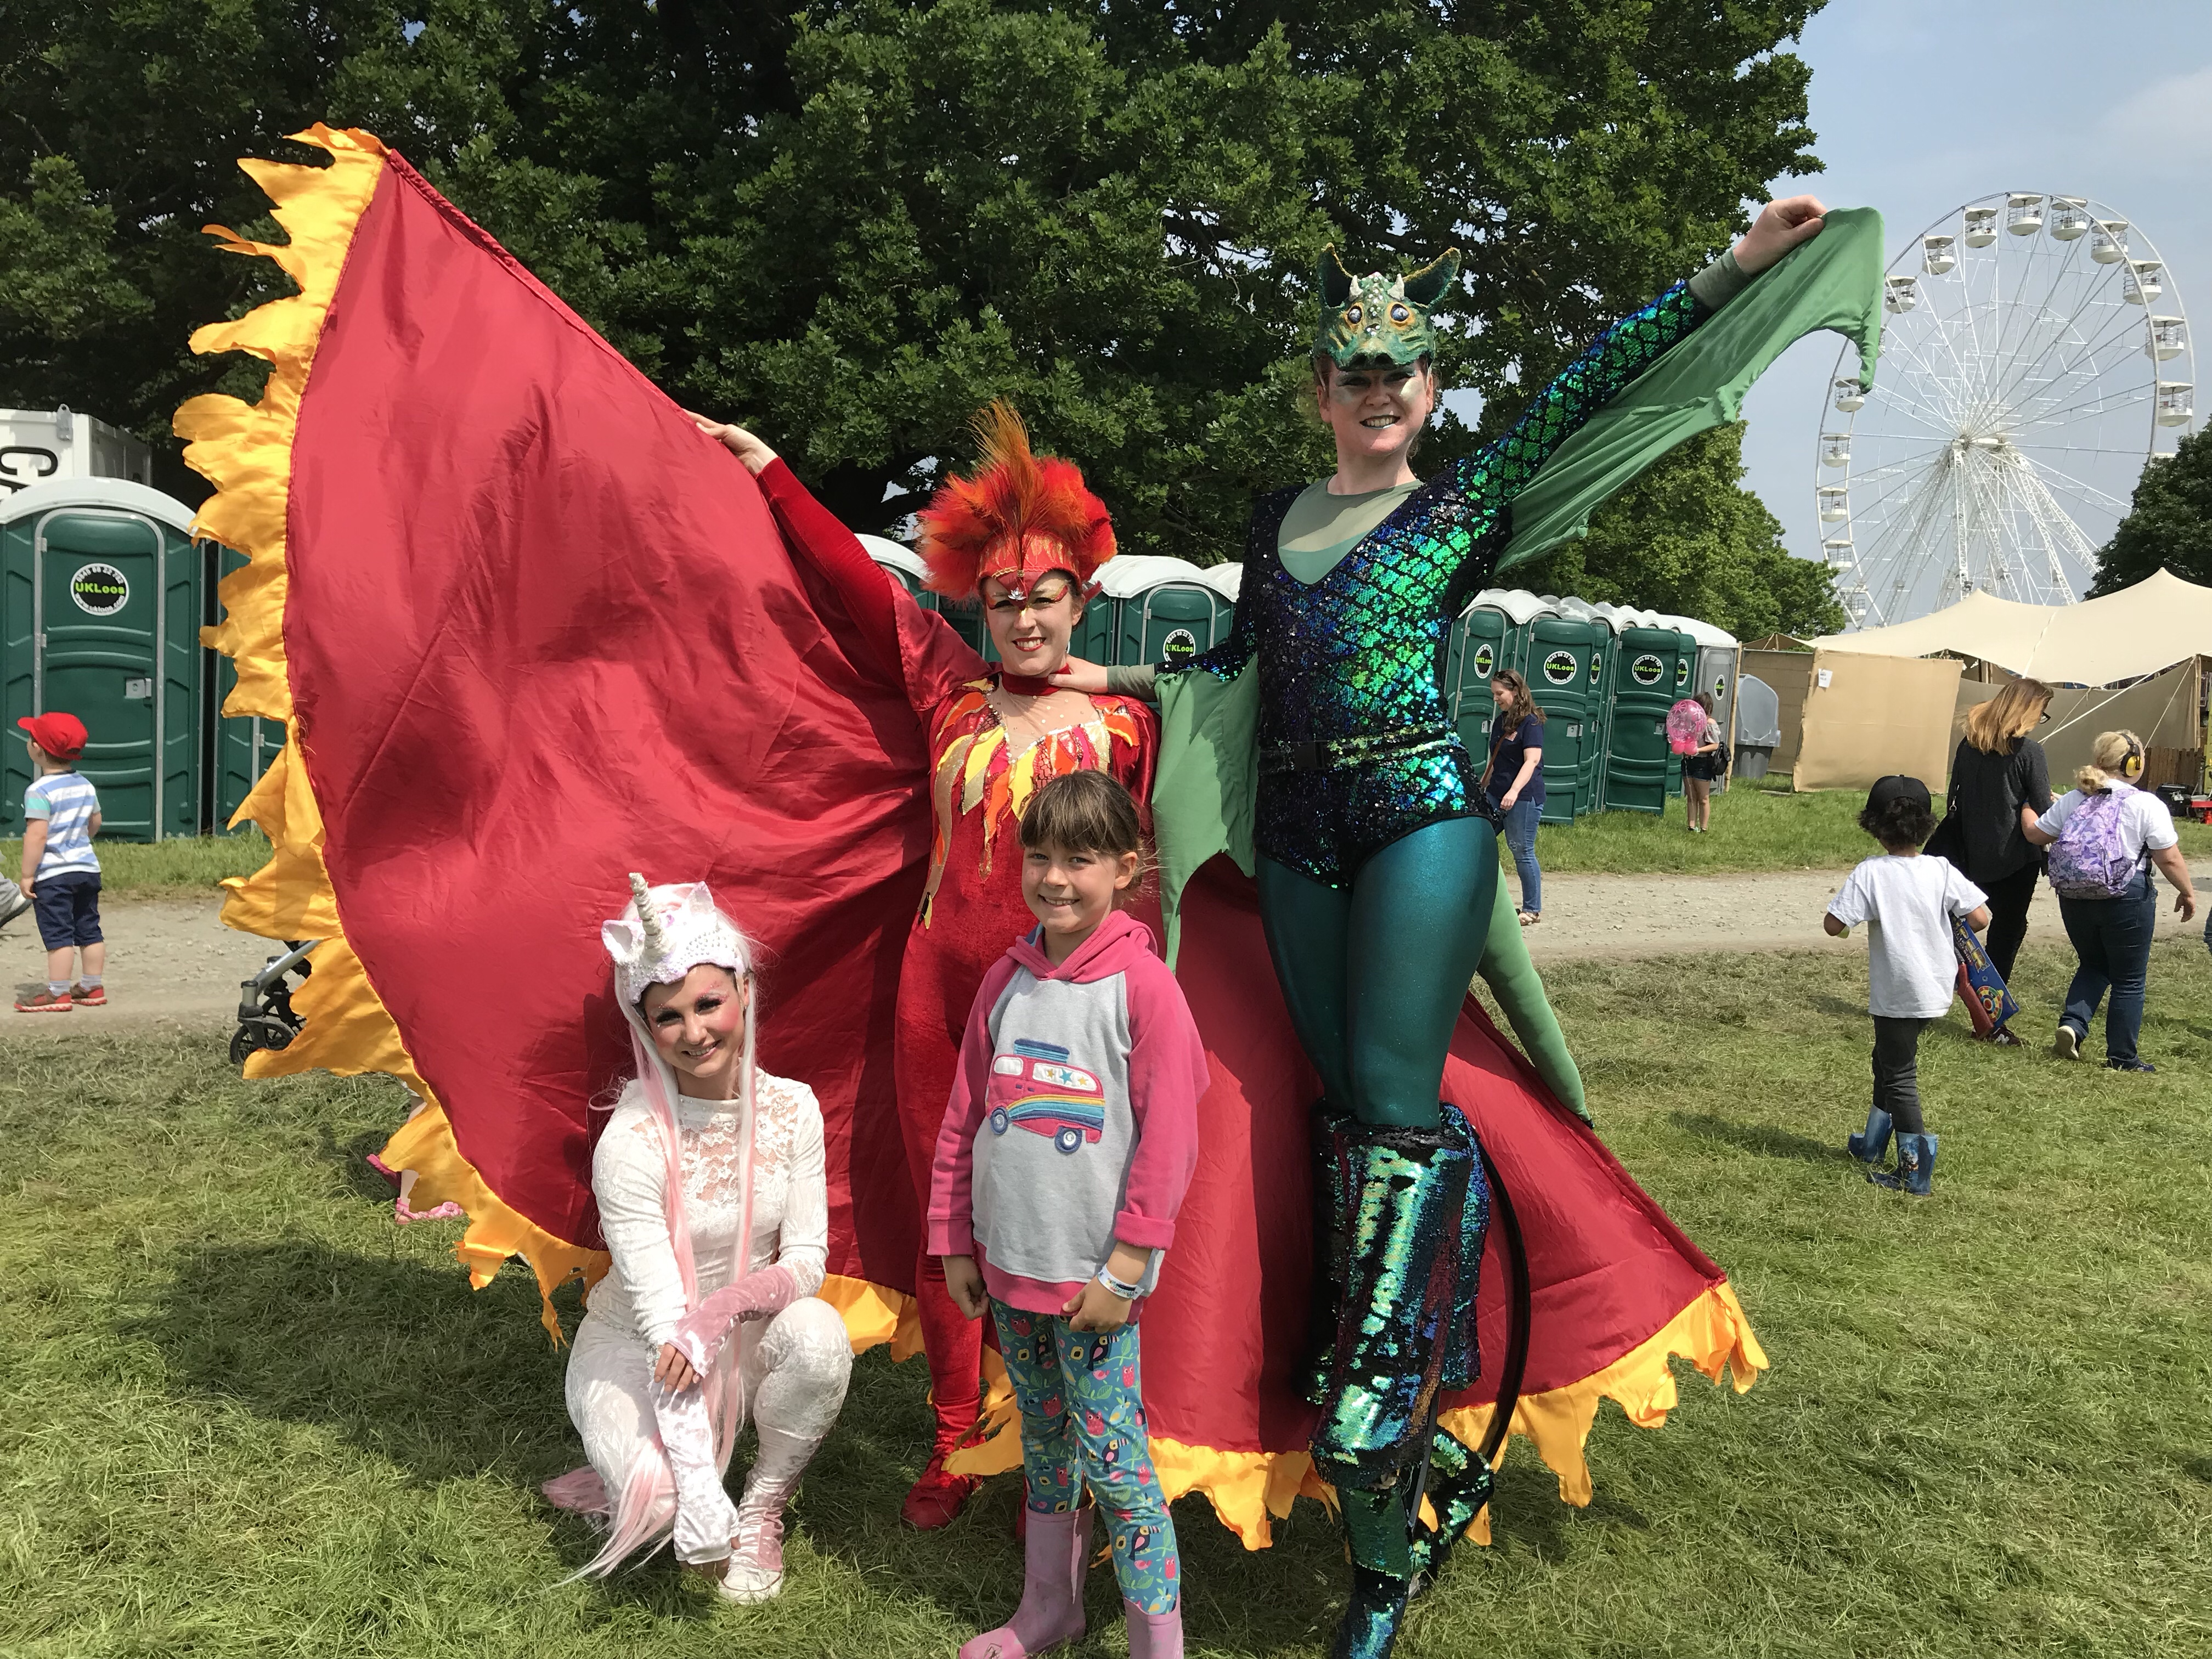 Some of the extravagantly costumed characters at Geronimo Festival, a unicorn, a red fiery creature with huge woods and a green dragon on stilts standing with my daughter.